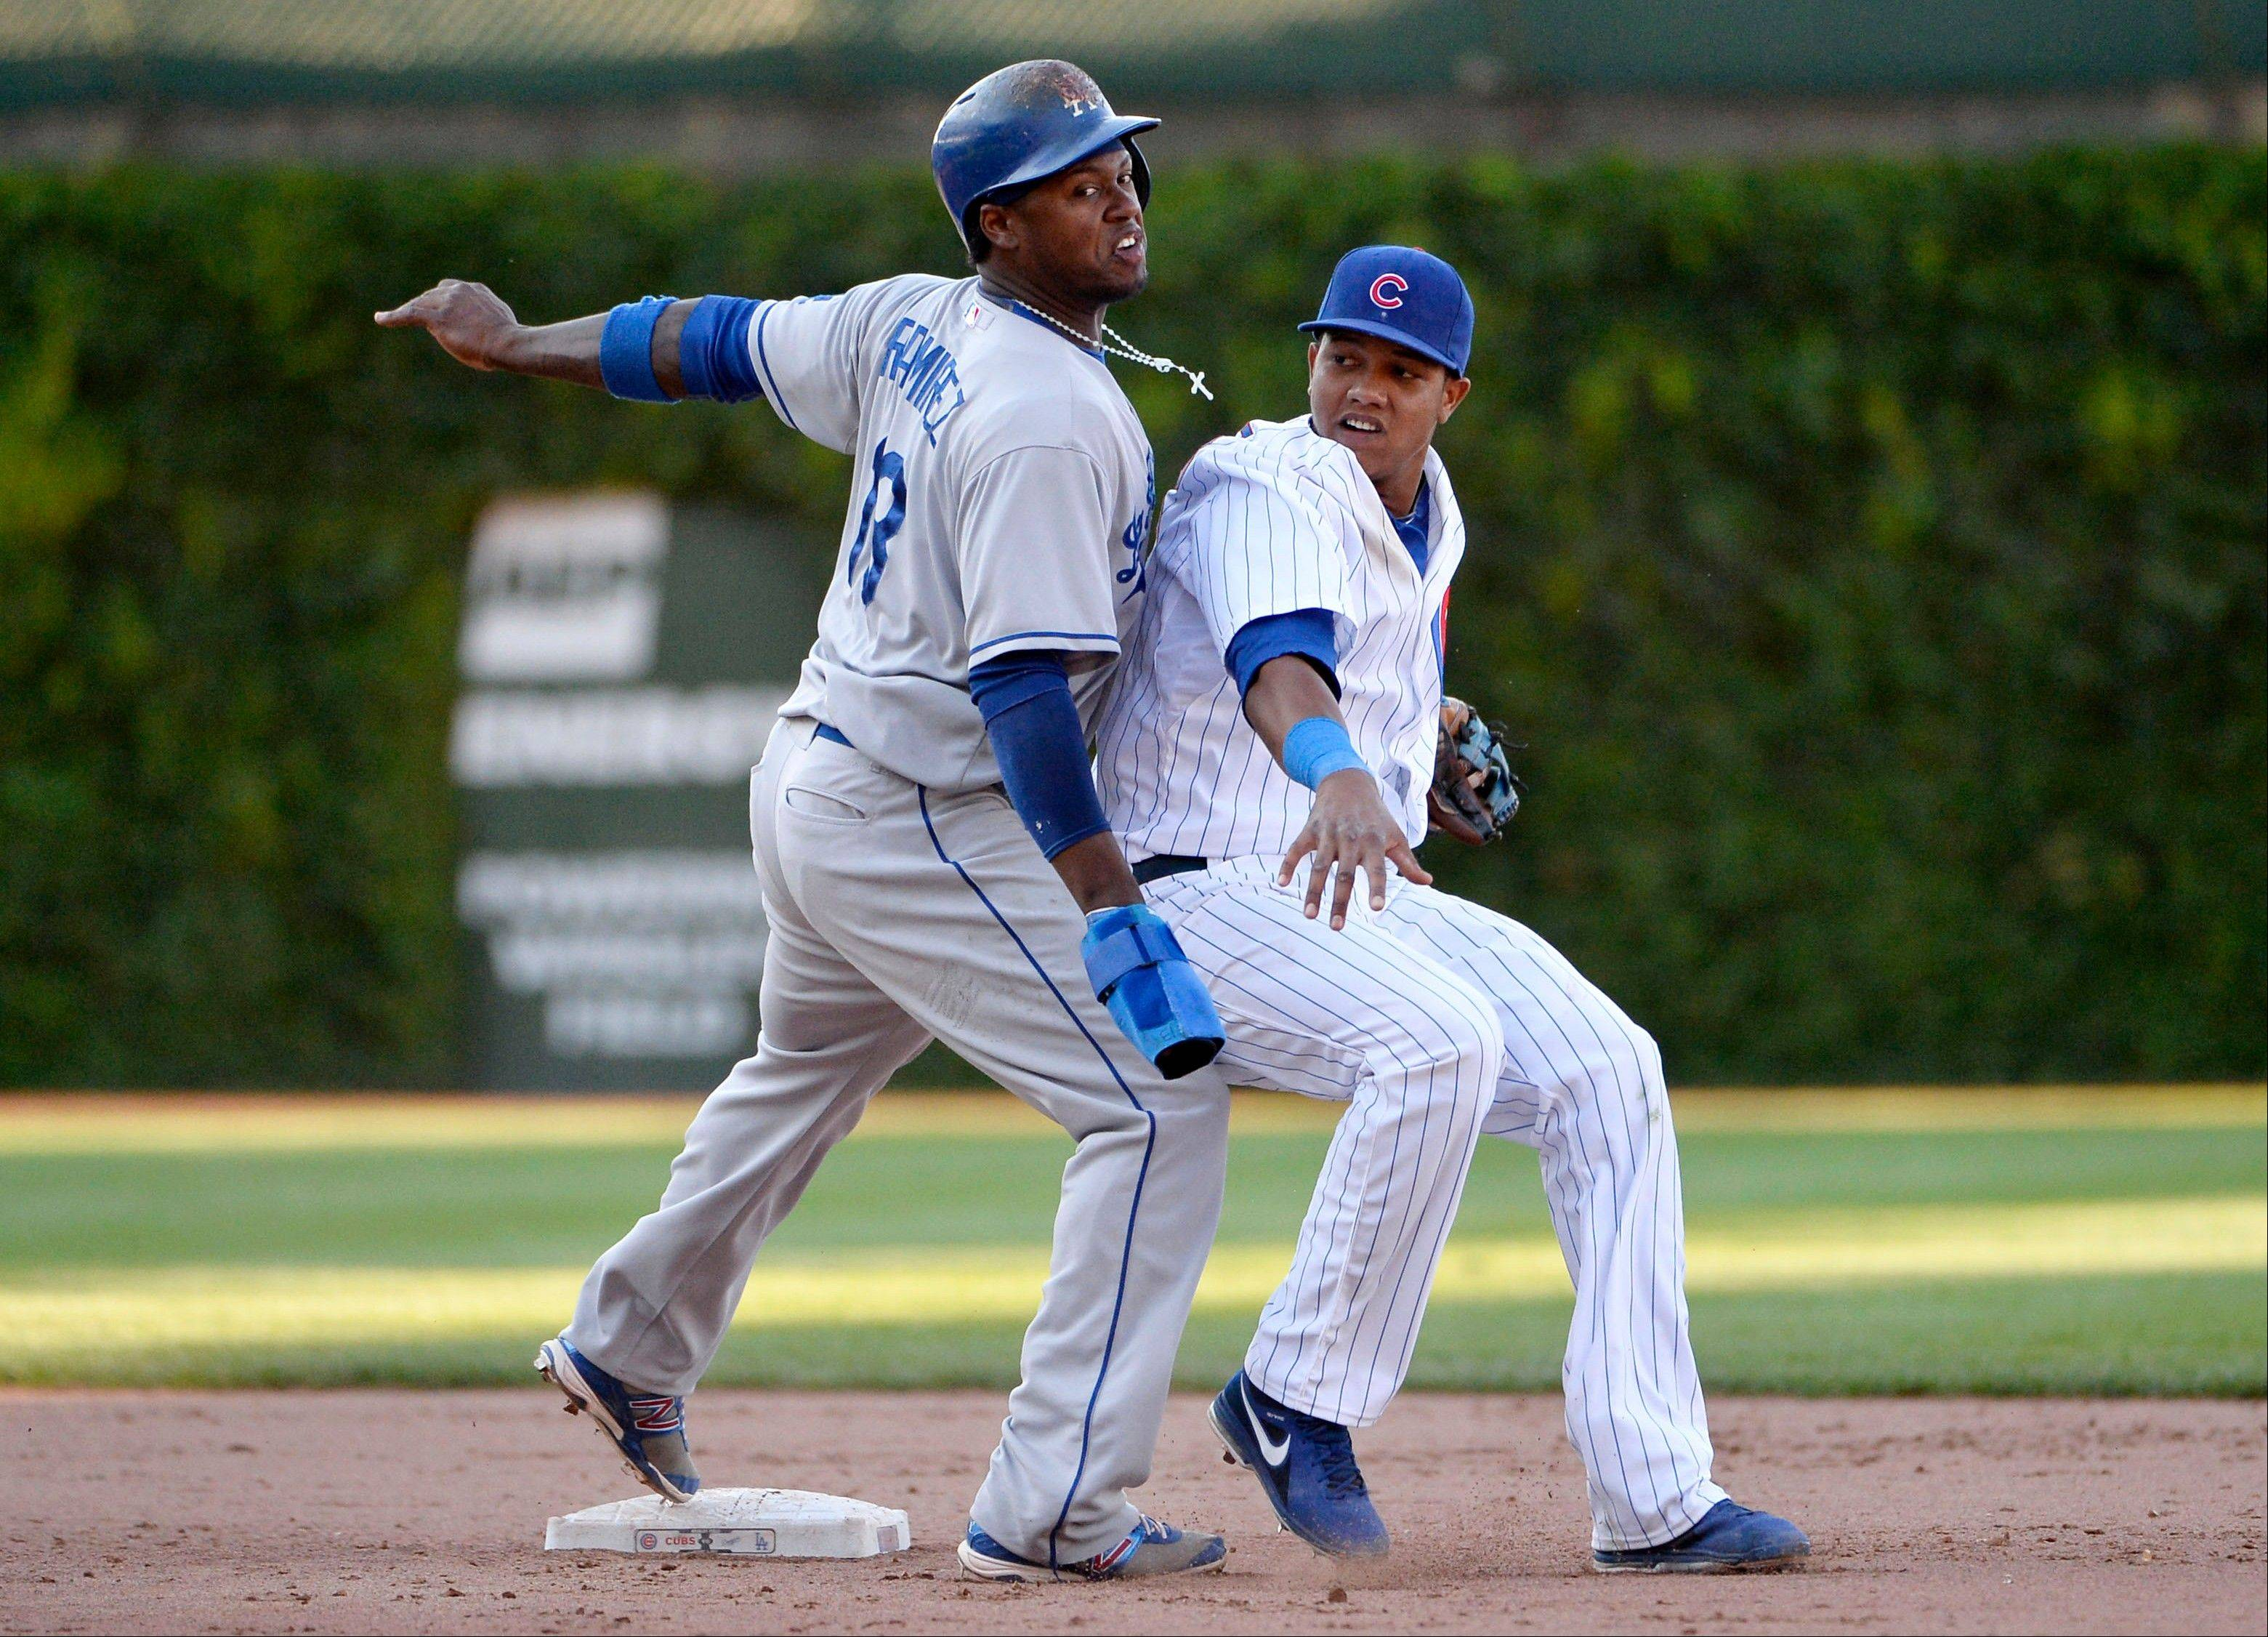 Los Angeles Dodgers' Hanley Ramirez, left, collides with Chicago Cubs shortstop Starlin Castro after Castro doubled him up at second base after catching a line drive hit by Adrian Gonzalez during the ninth inning of a baseball game, Saturday, Aug. 3, 2013, in Chicago.